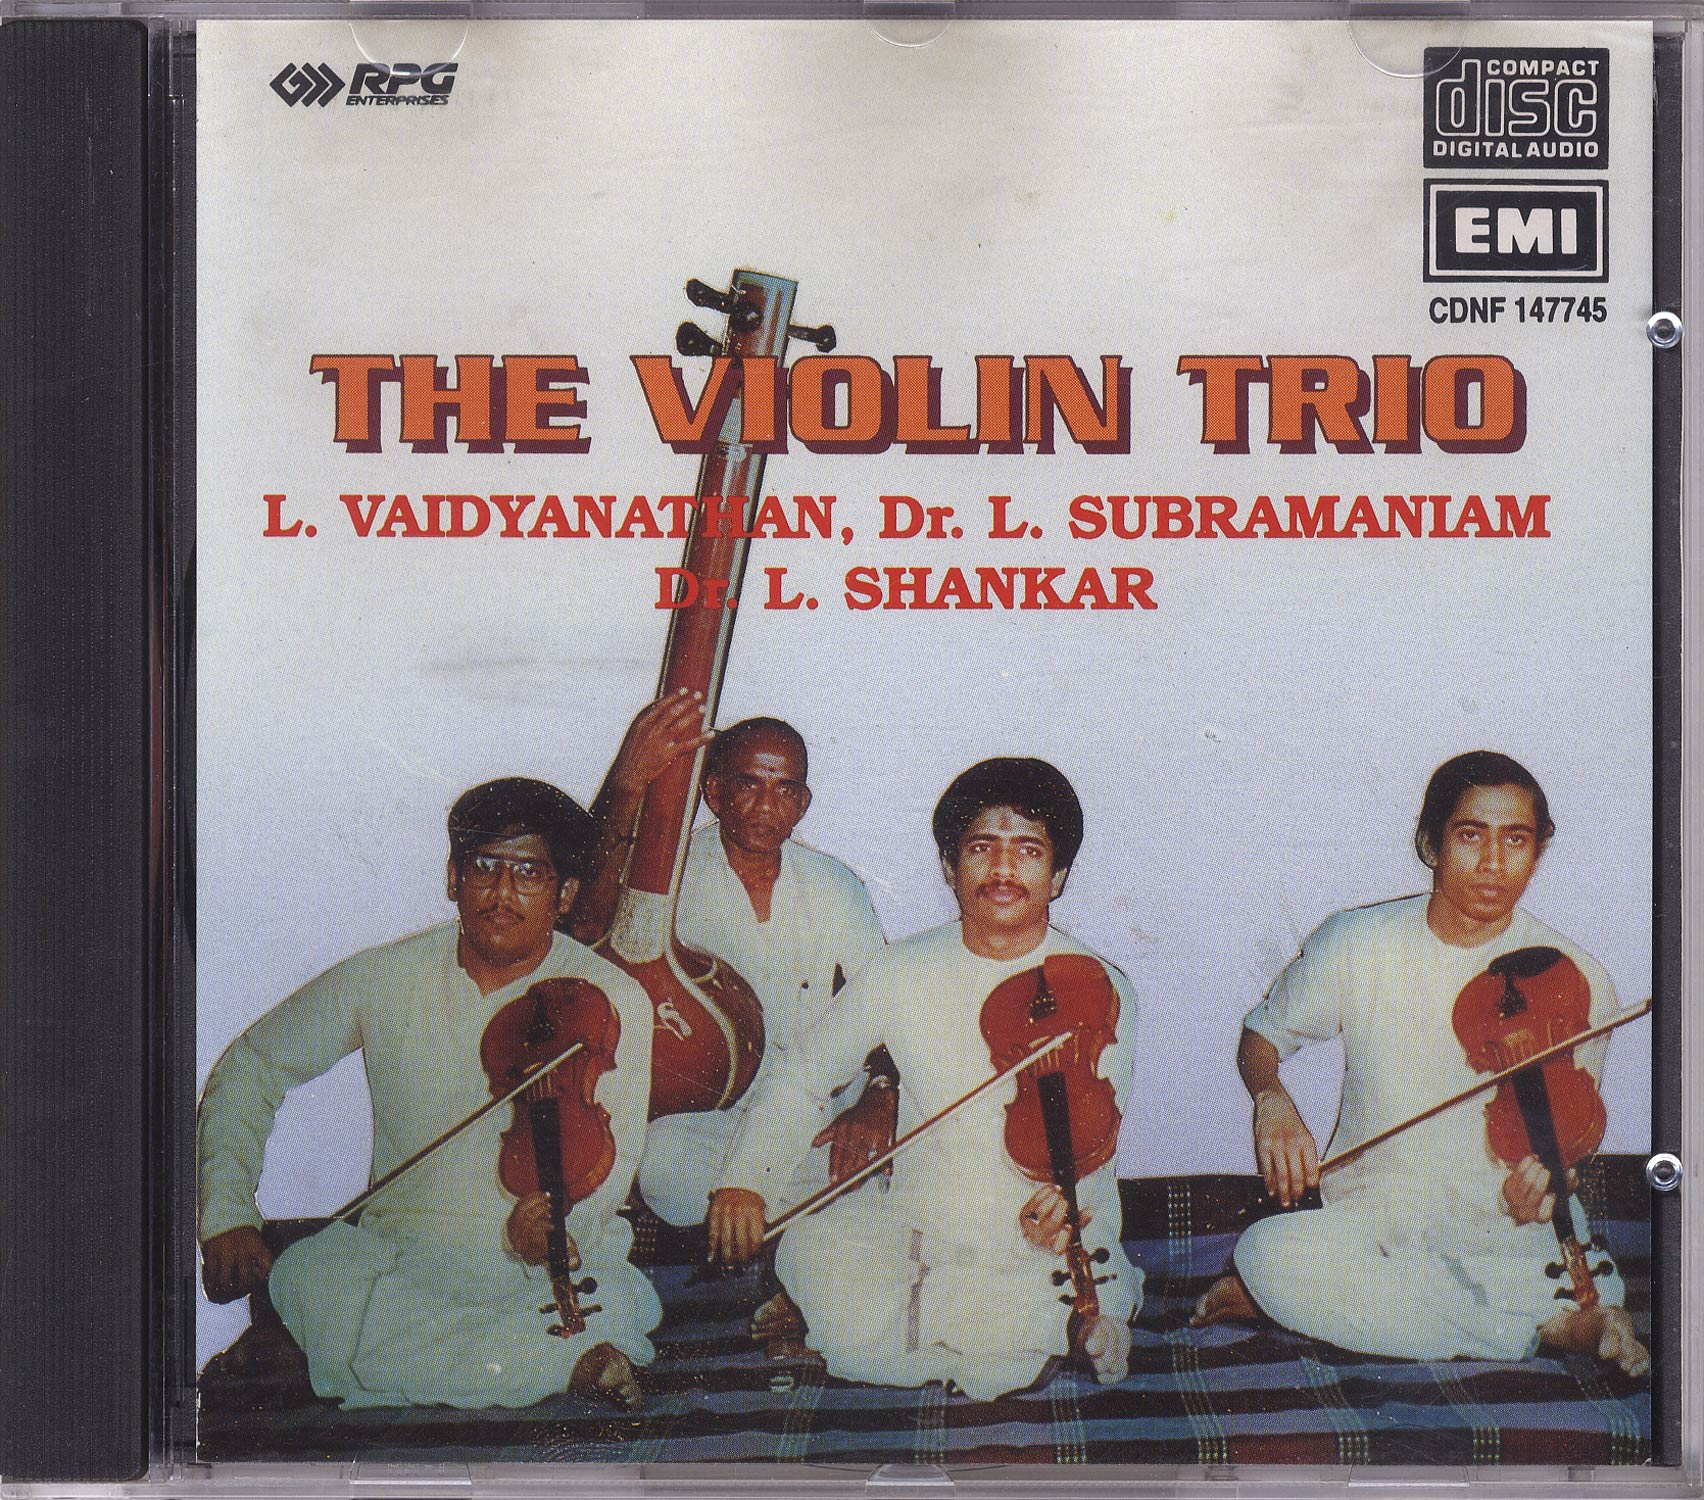 The Violin Trio